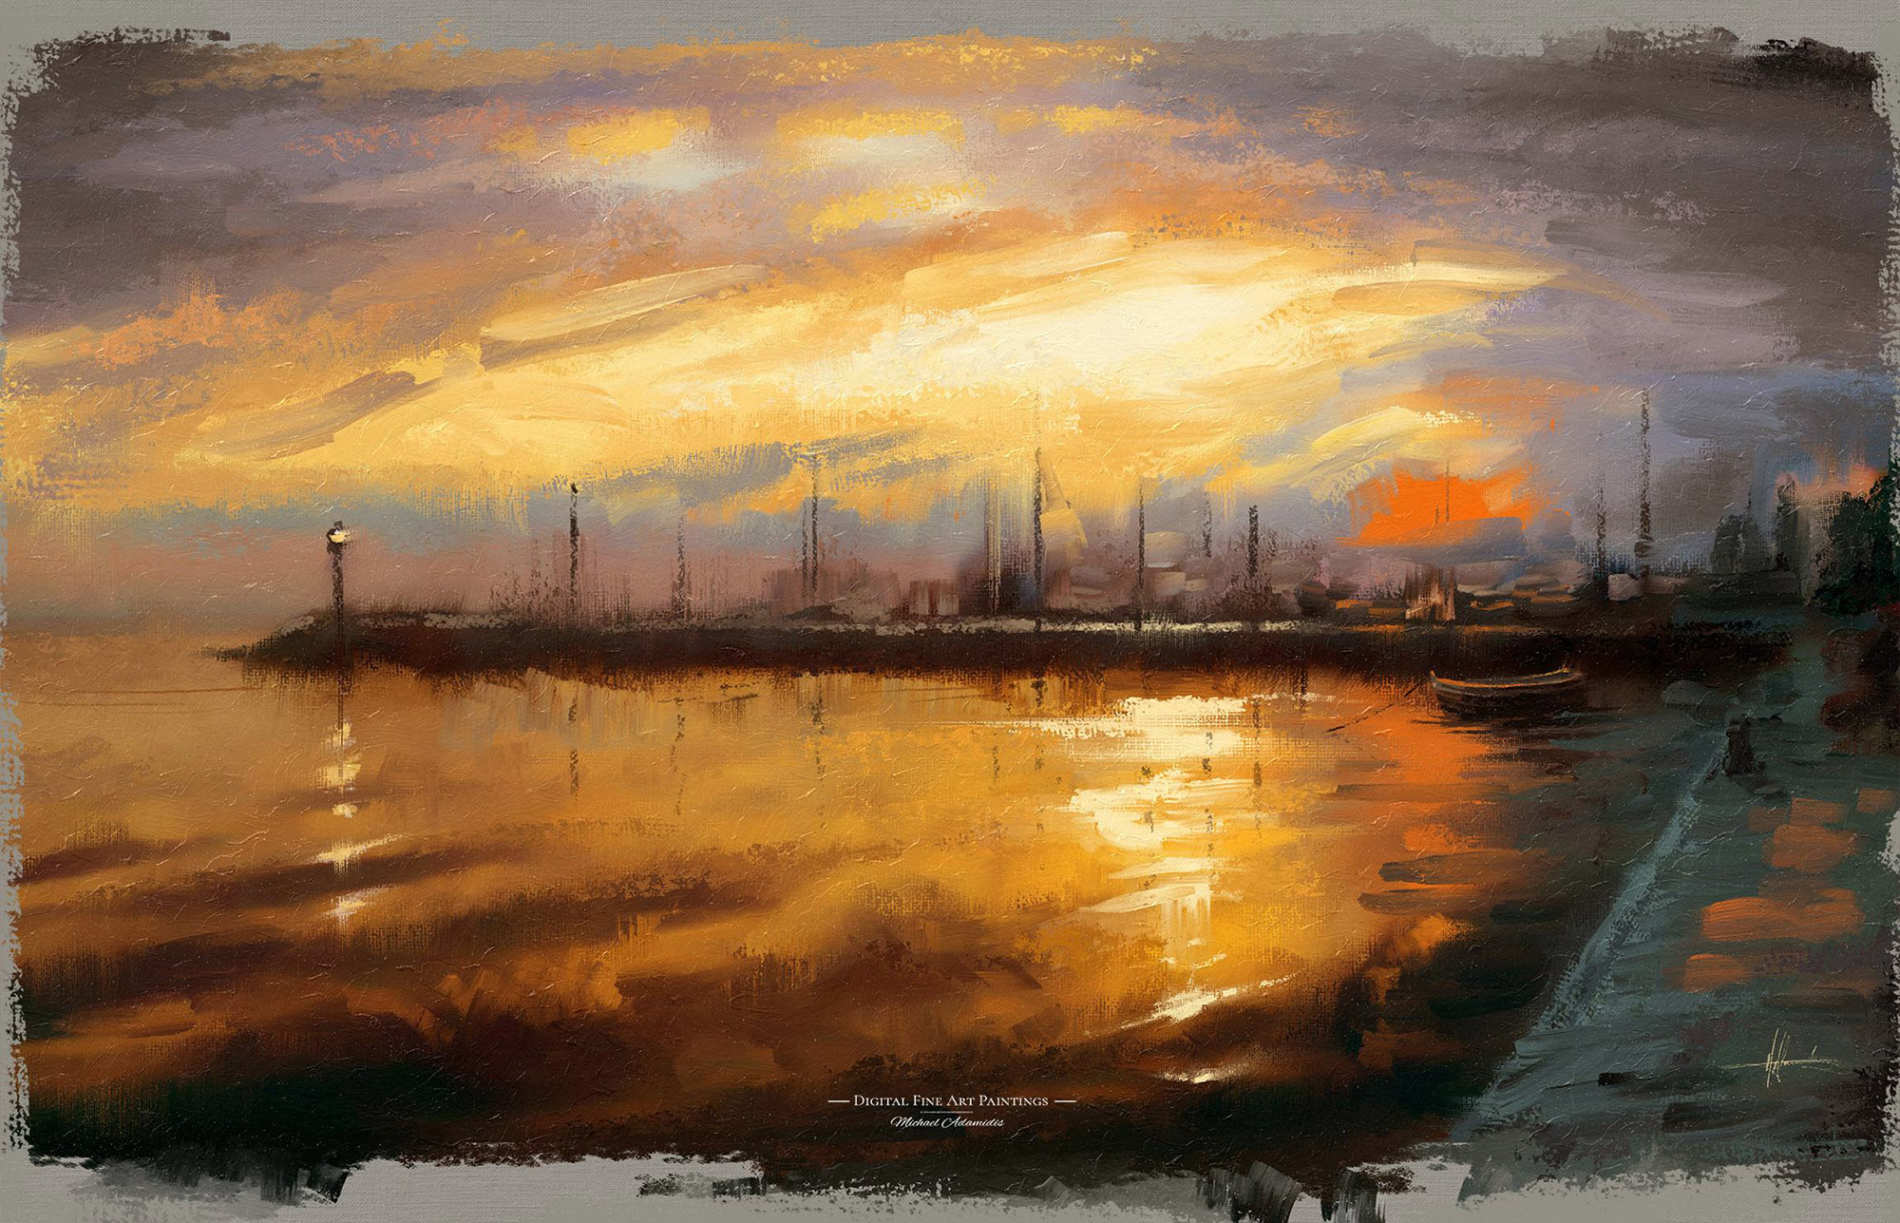 Digital Oil Paintings - Photoshop Painting Brushes with Oil